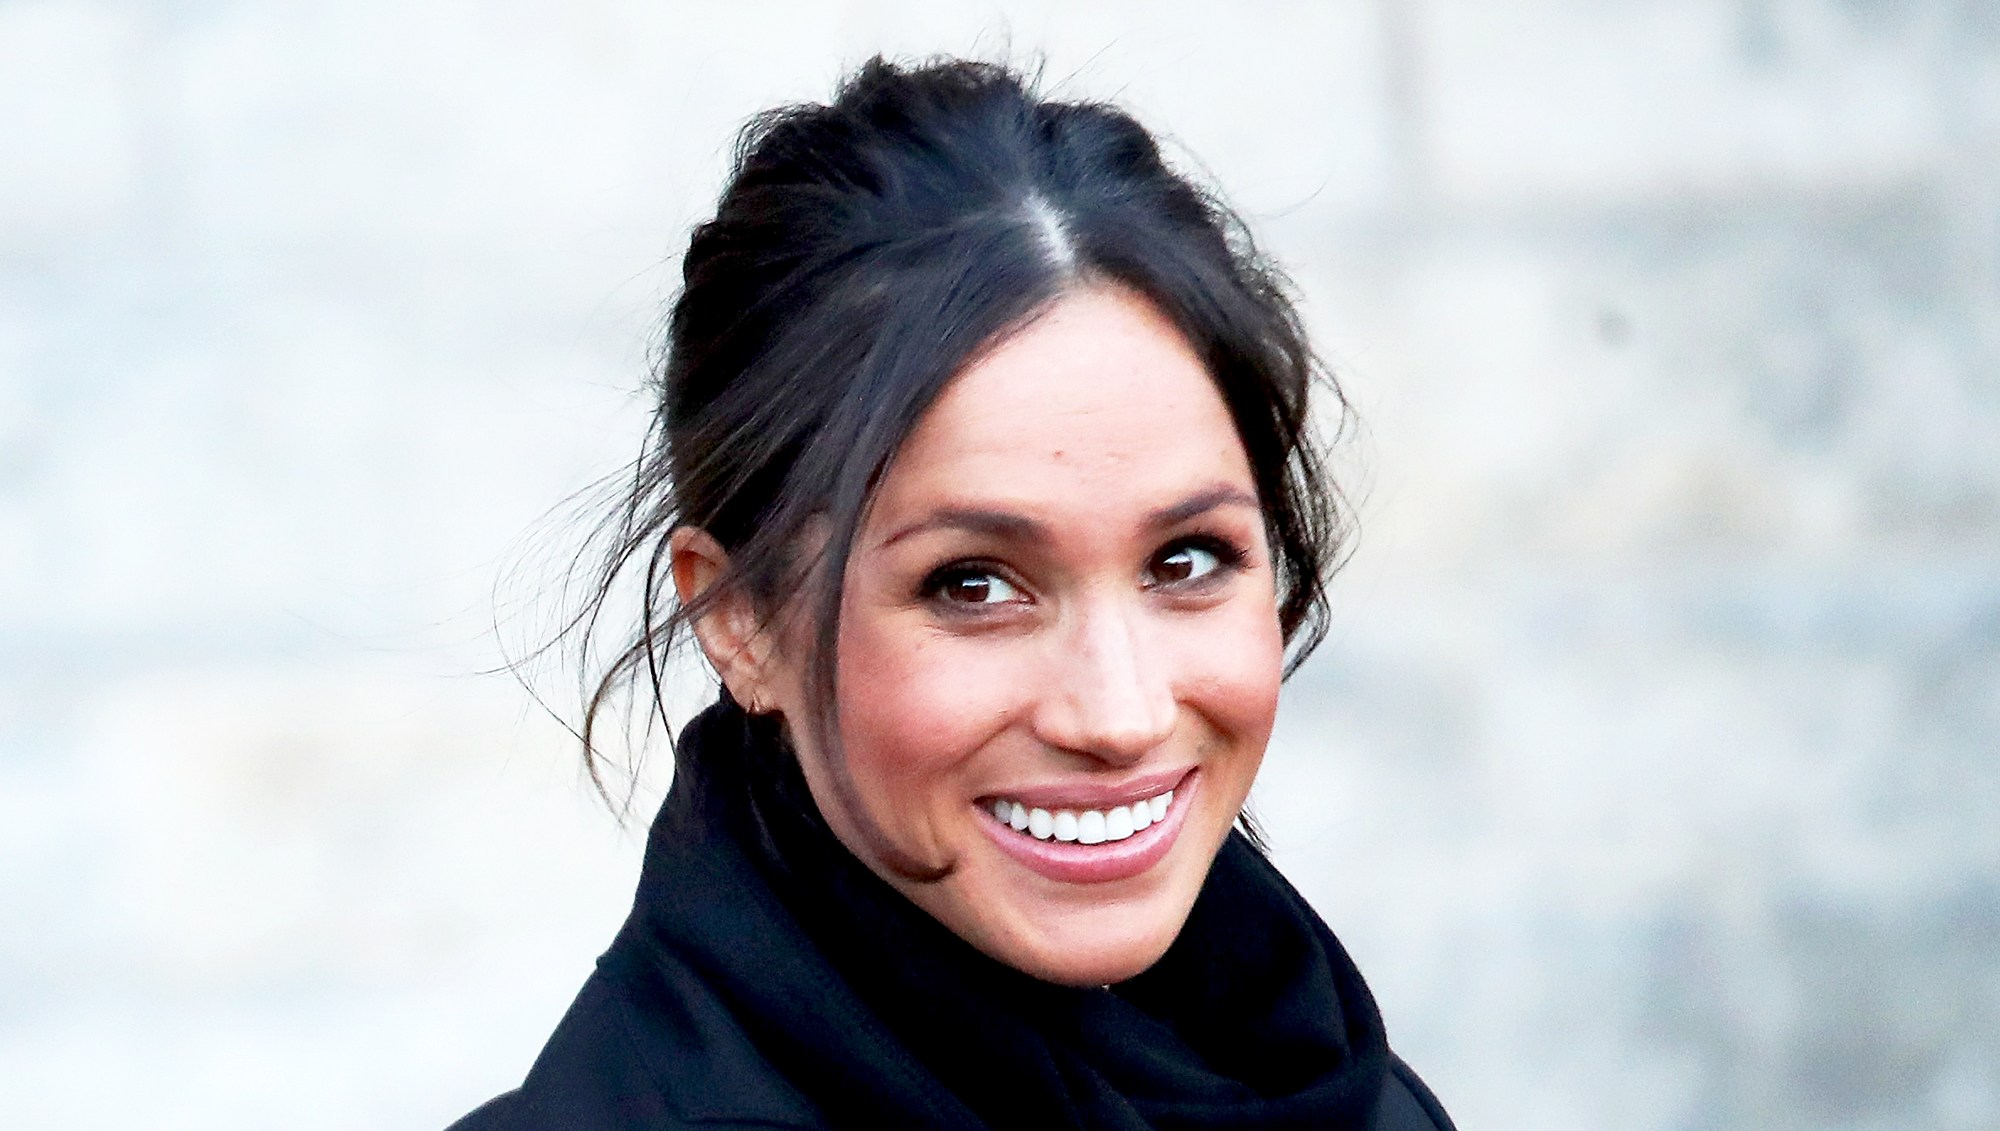 Meghan Markle seen at Cardiff Castle on January 18, 2018 in Cardiff, Wales.